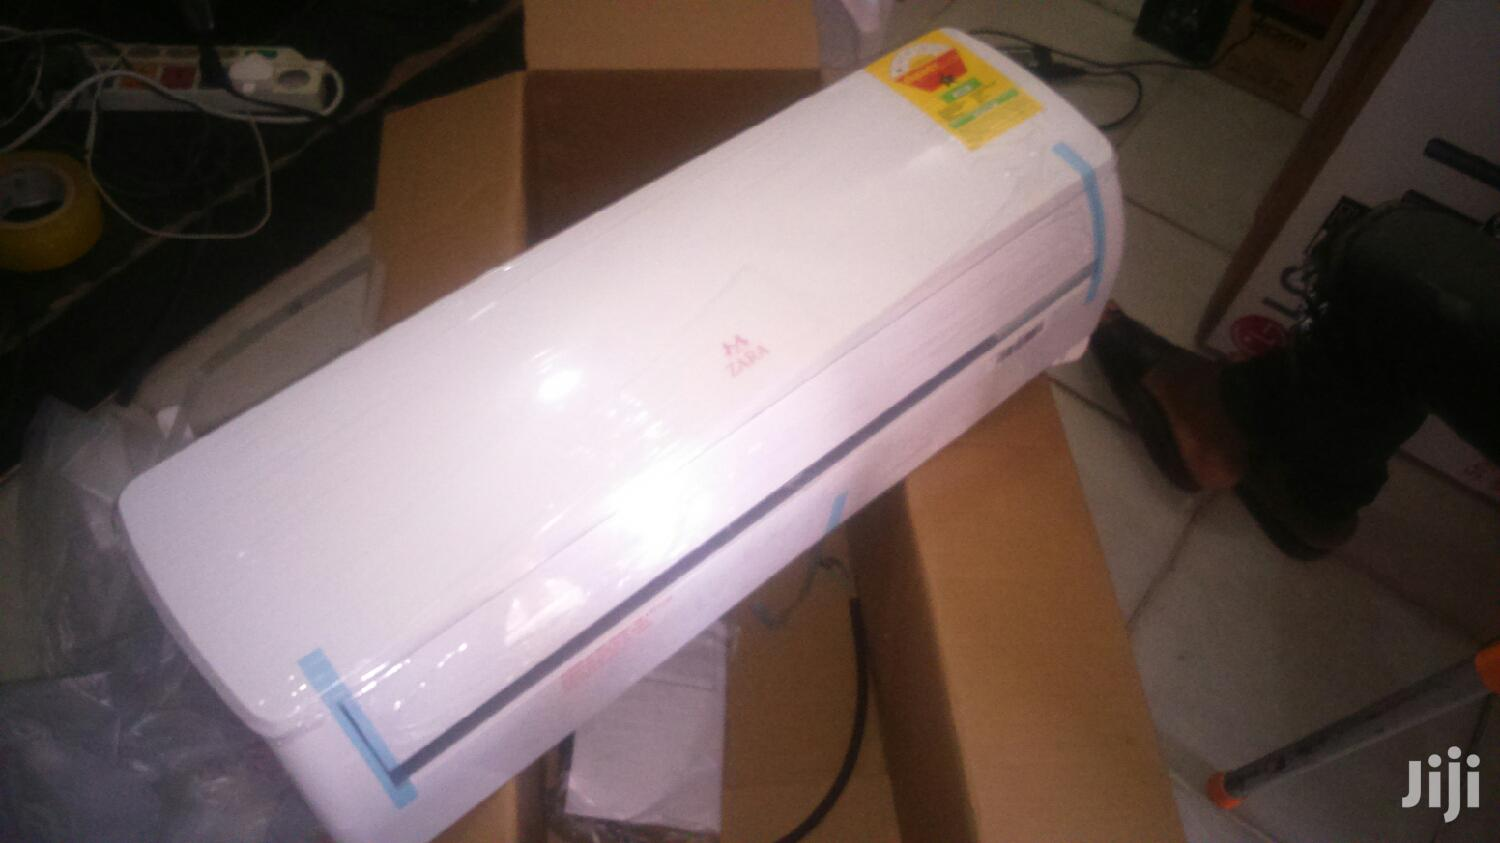 The New Zara 1.5hp Air Conditioner